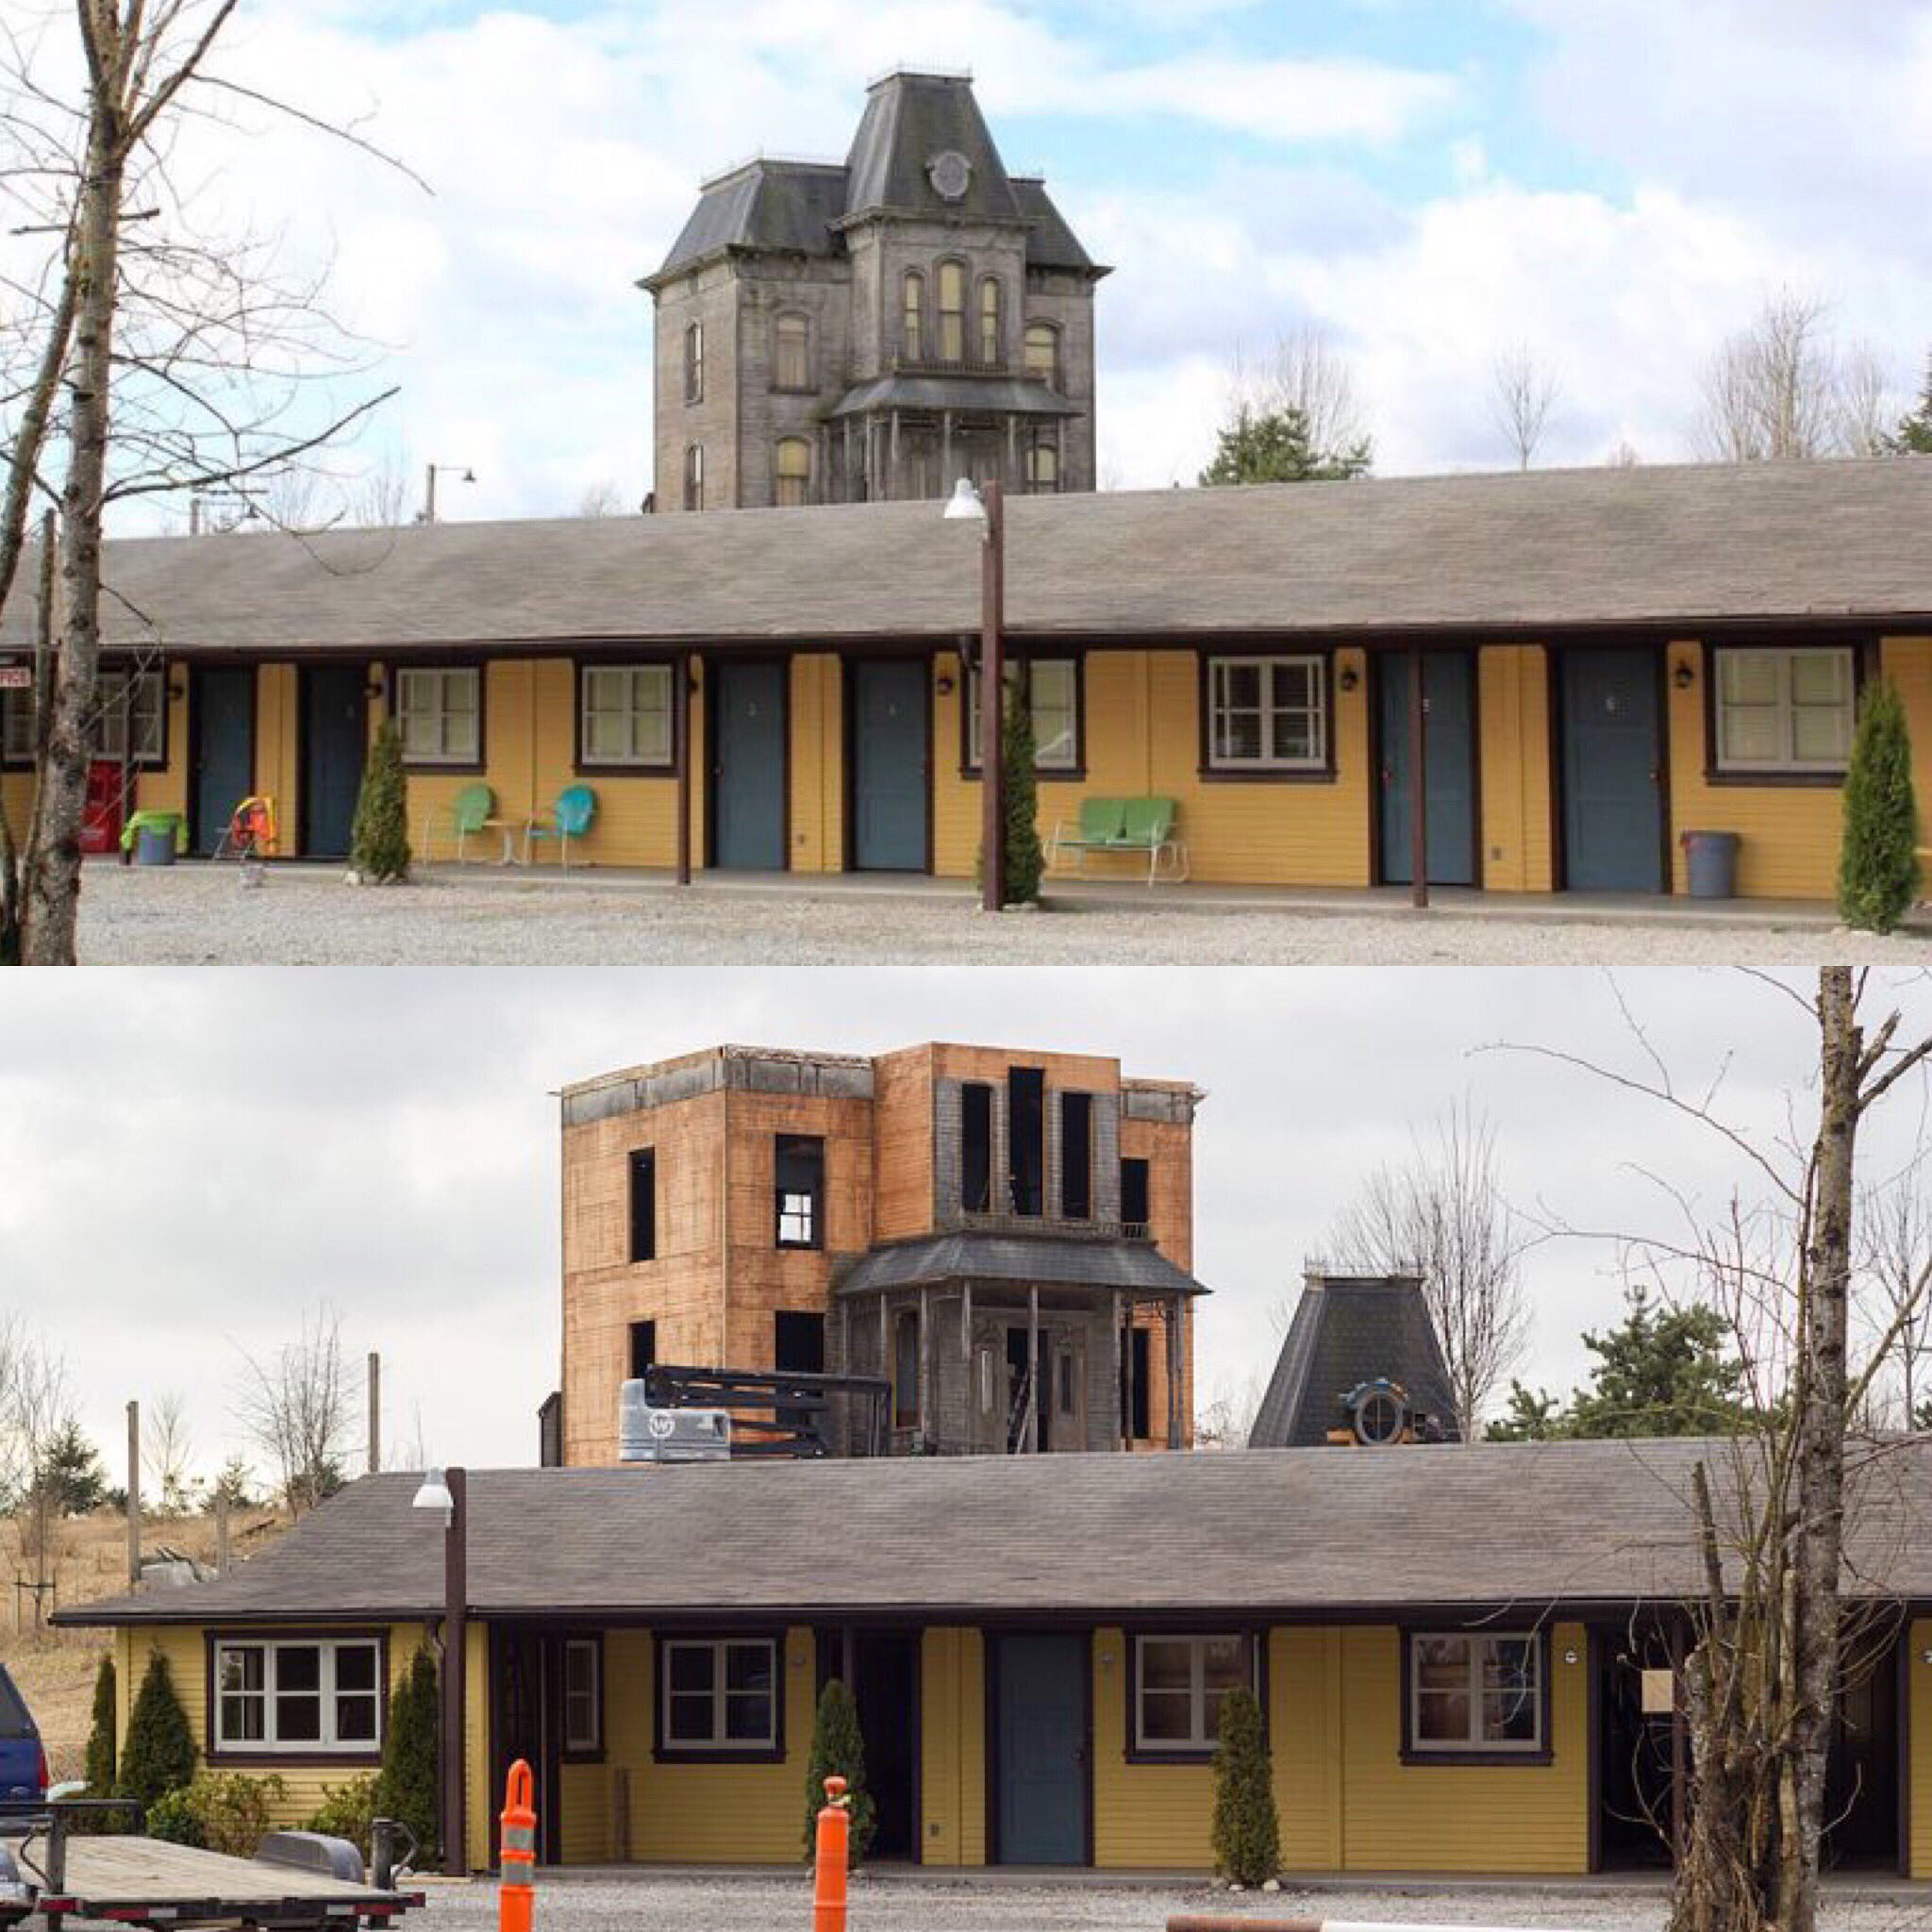 Bates Motel: Norma Bates' Iconic Gothic Mansion In